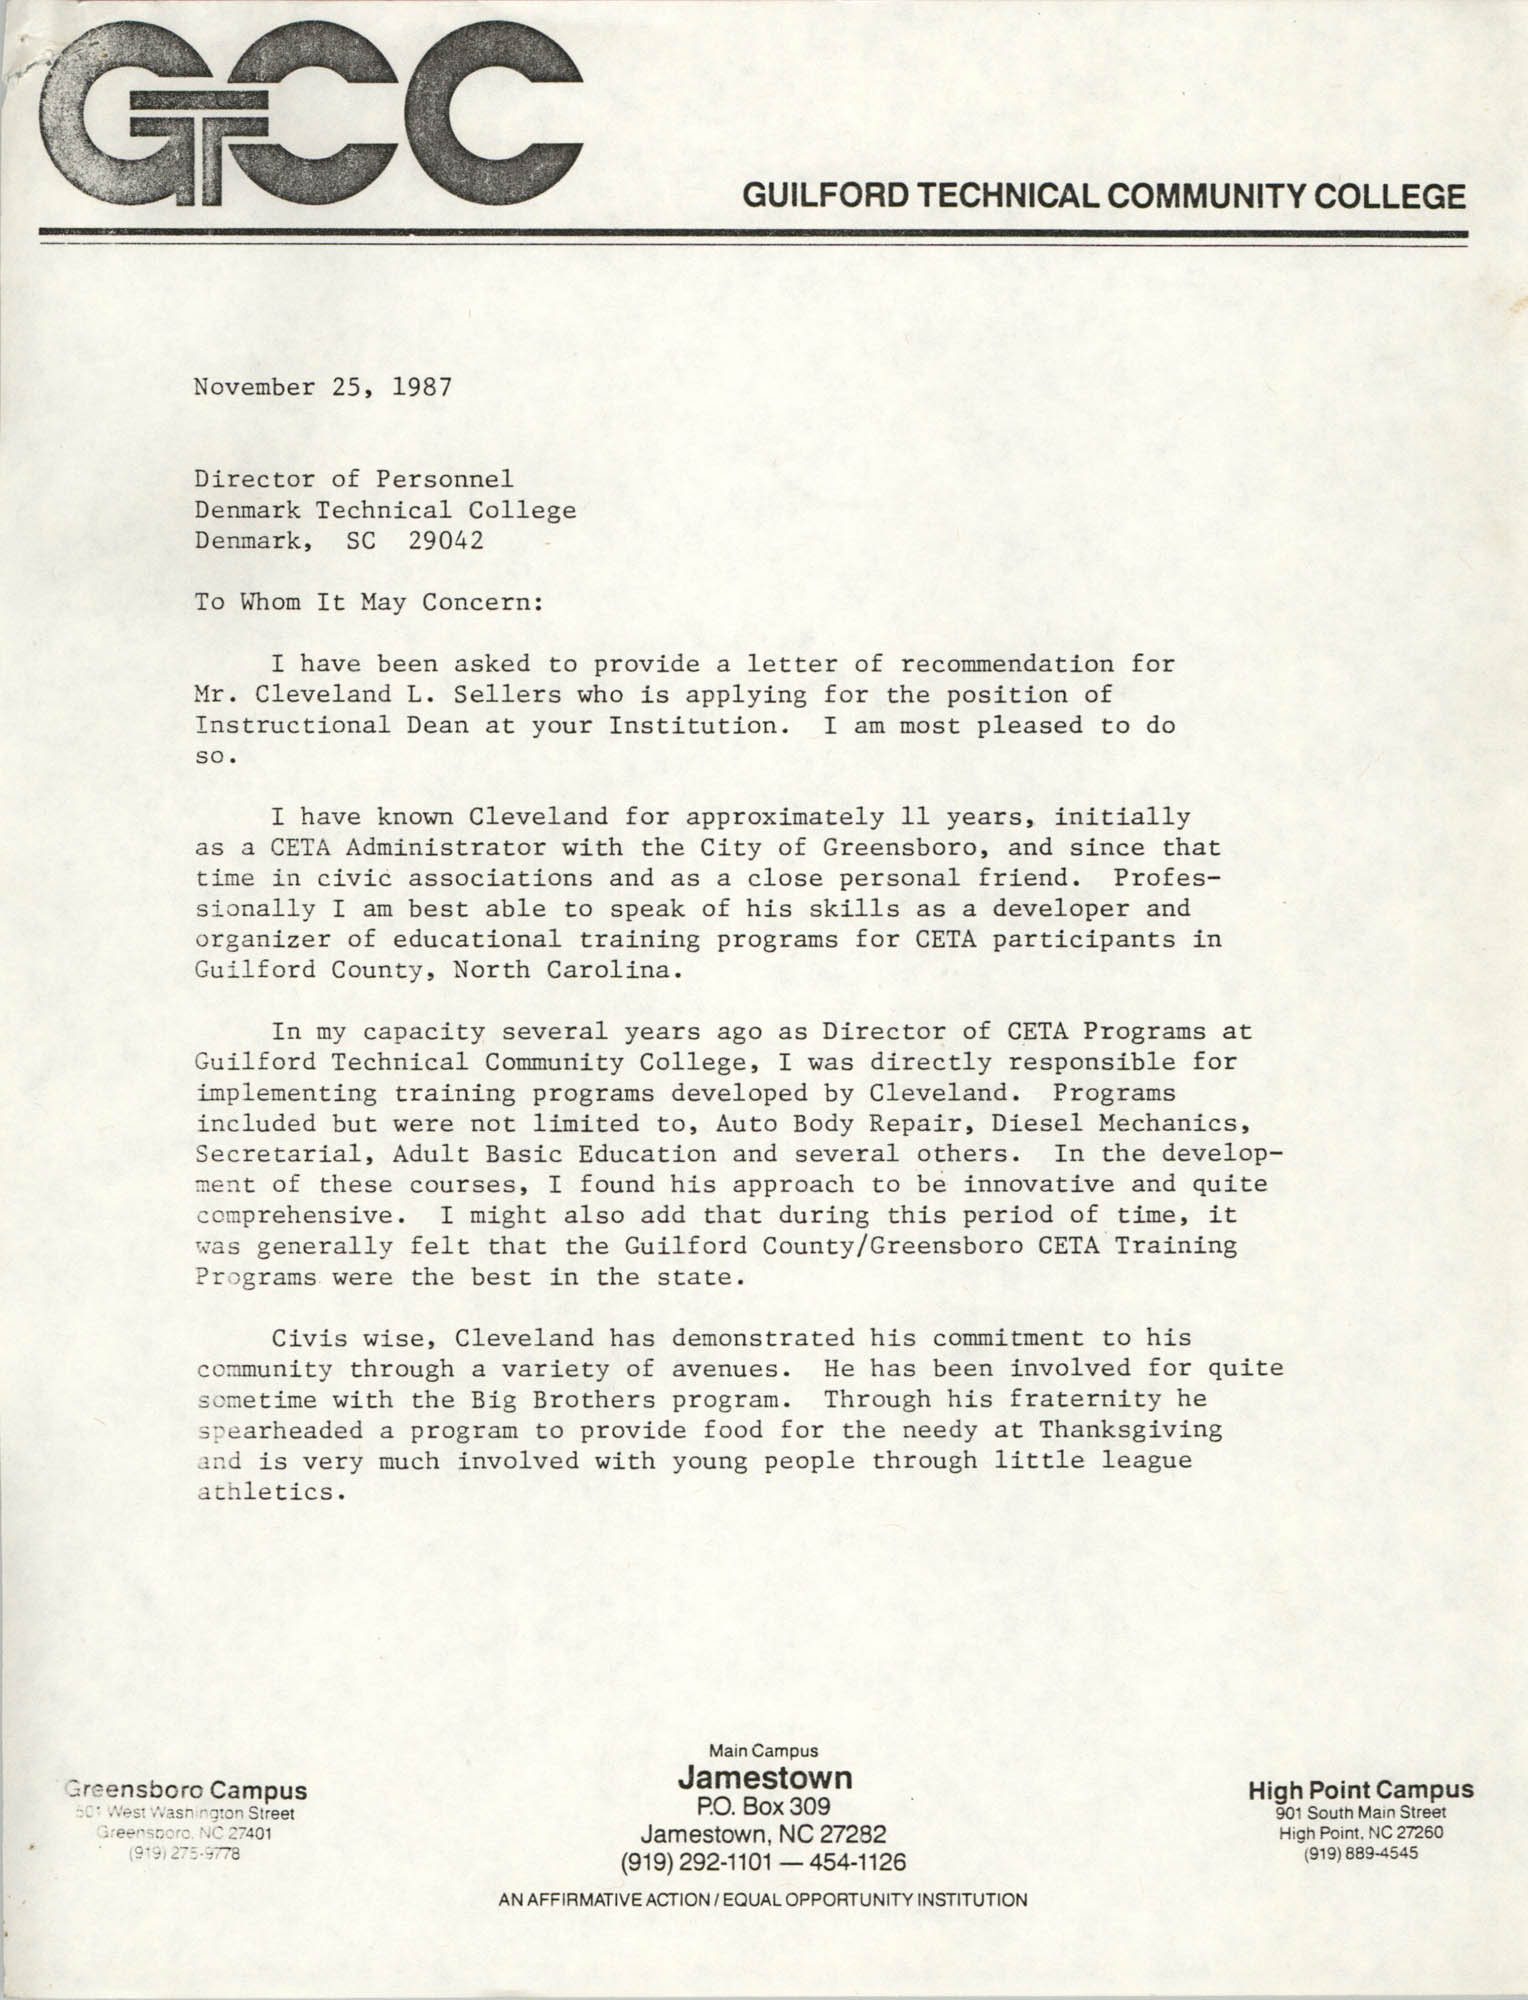 Letter from John T. Clark to Director of Personnel at Denmark Technical College, November 25, 1987